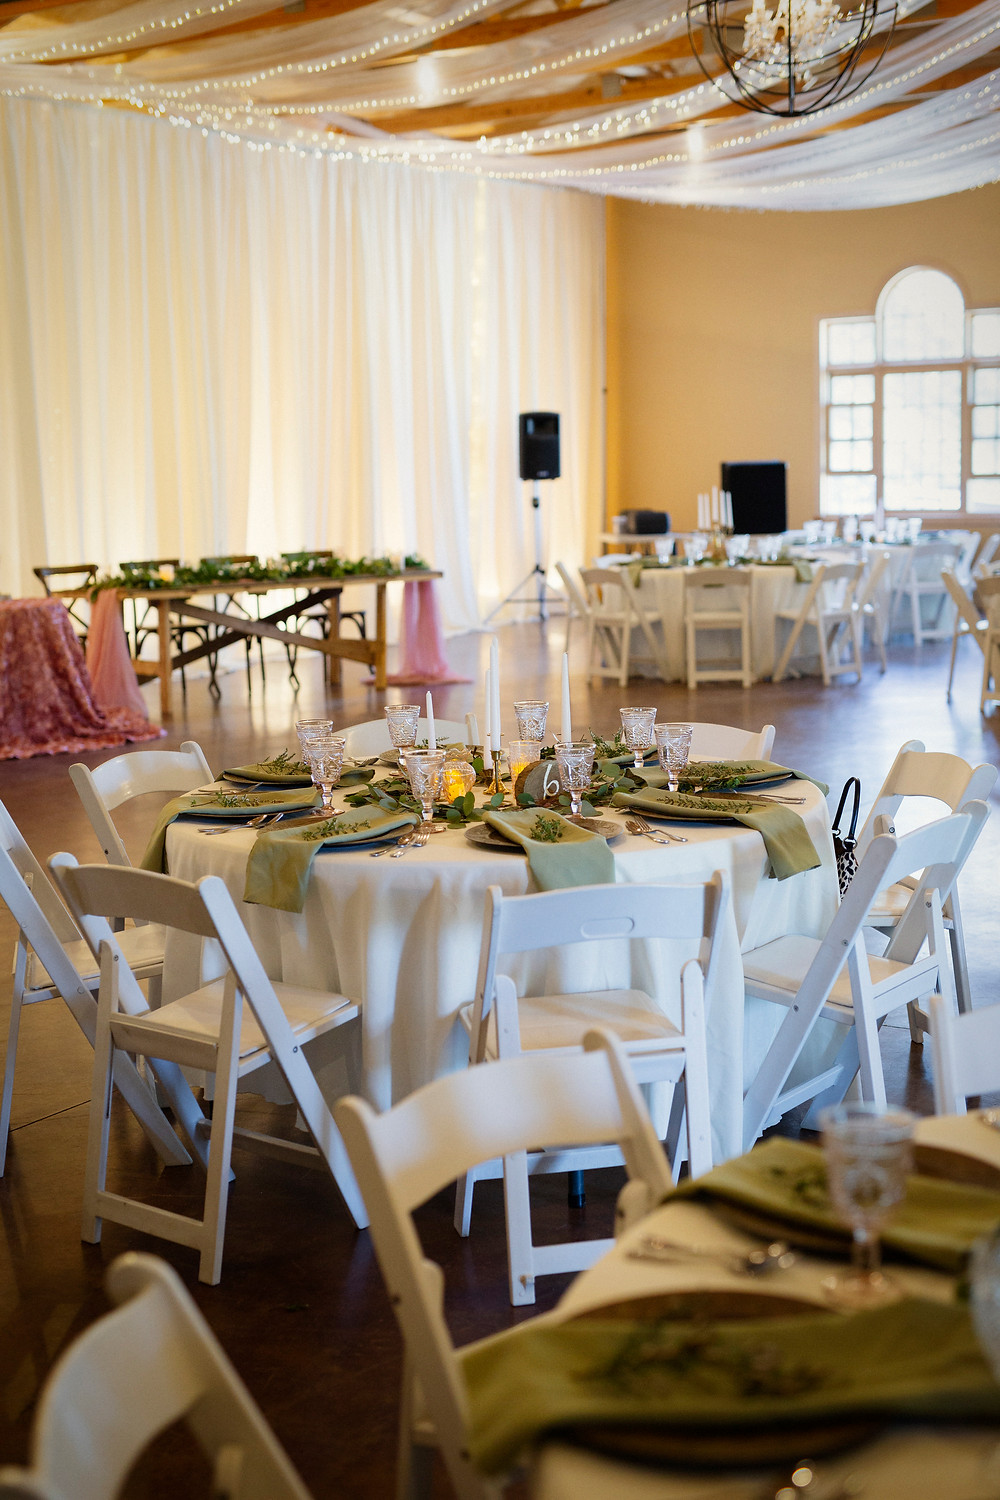 Round wedding tables with white linens, candles, green napkins, vintage barn wedding